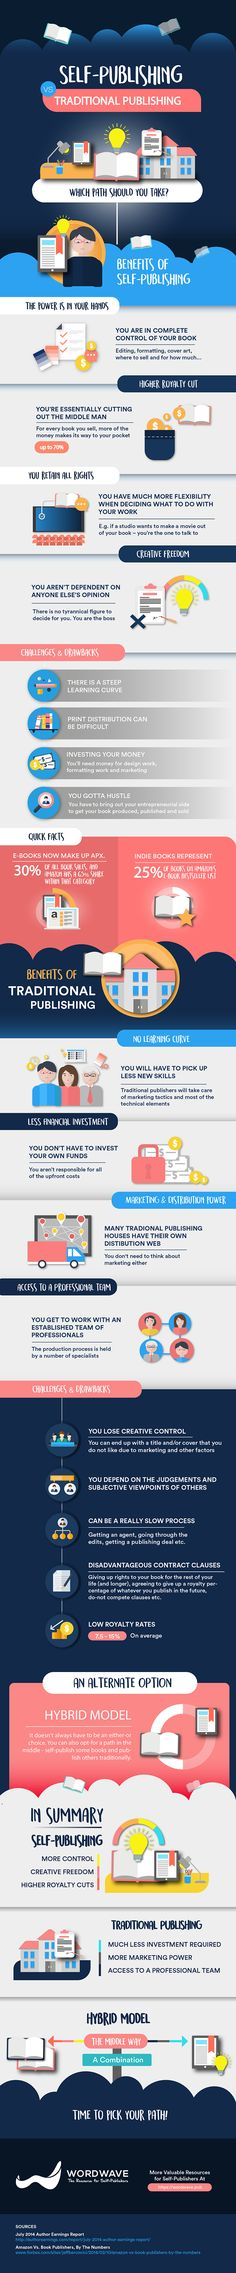 Latest Resume Trends Education - uCollect Infographics Pinterest - latest resume trends